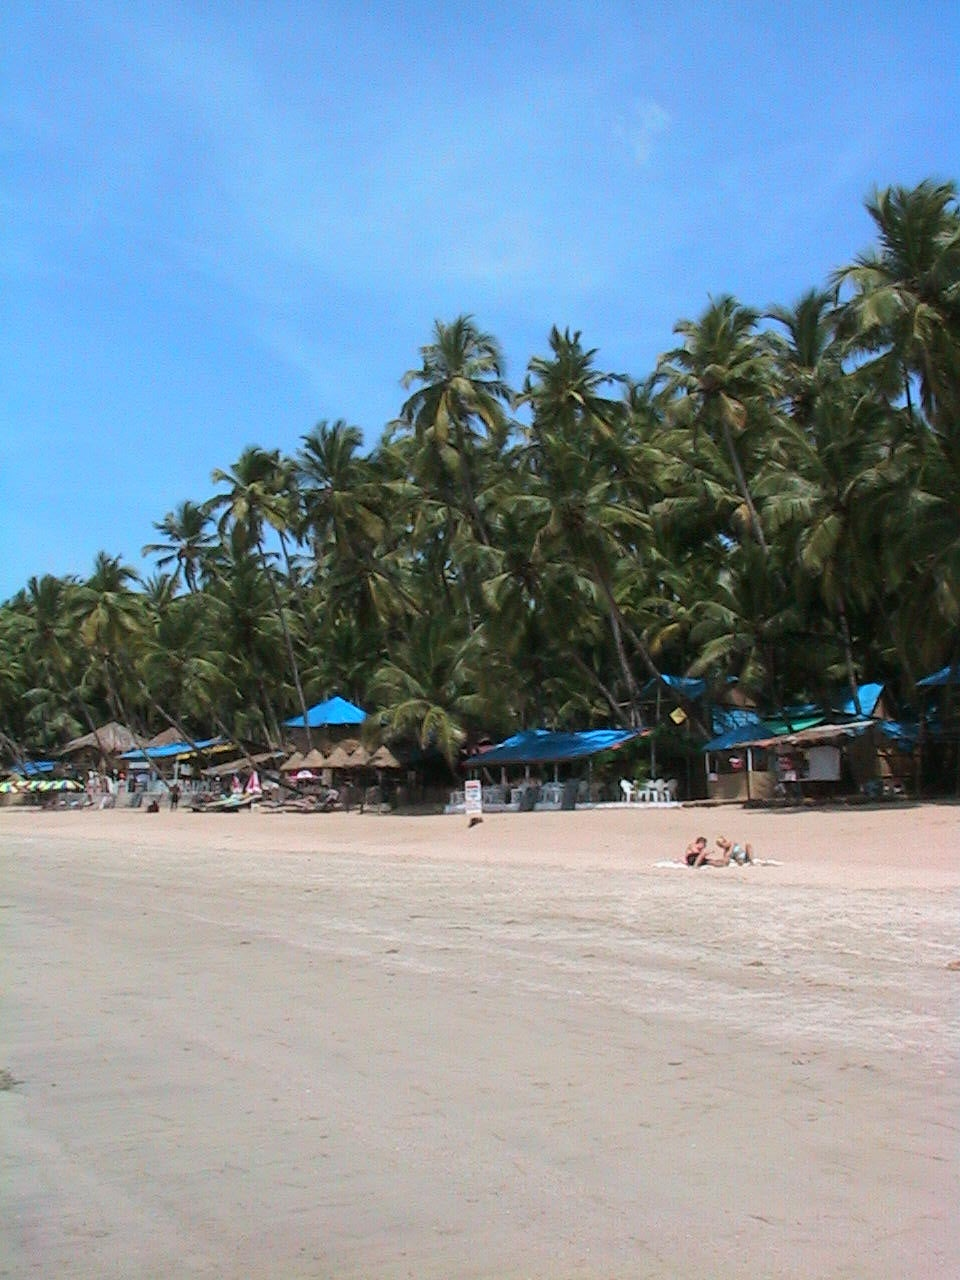 Plaza en Playa de Goa